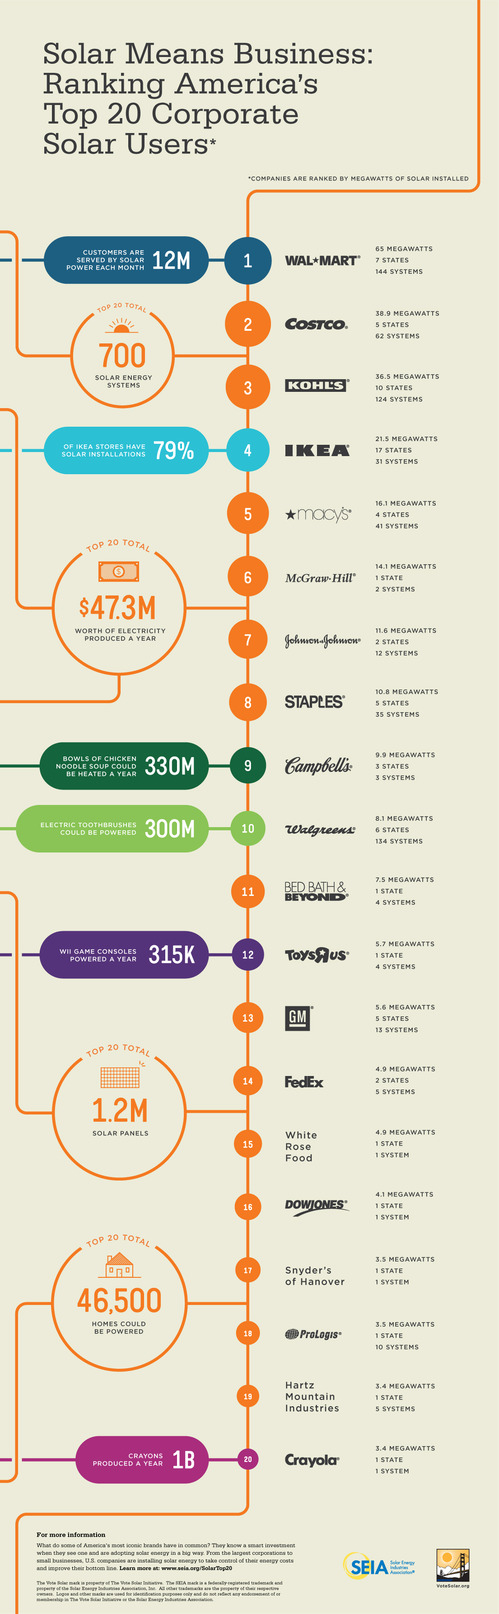 Solar-means-business-infographic.jpg